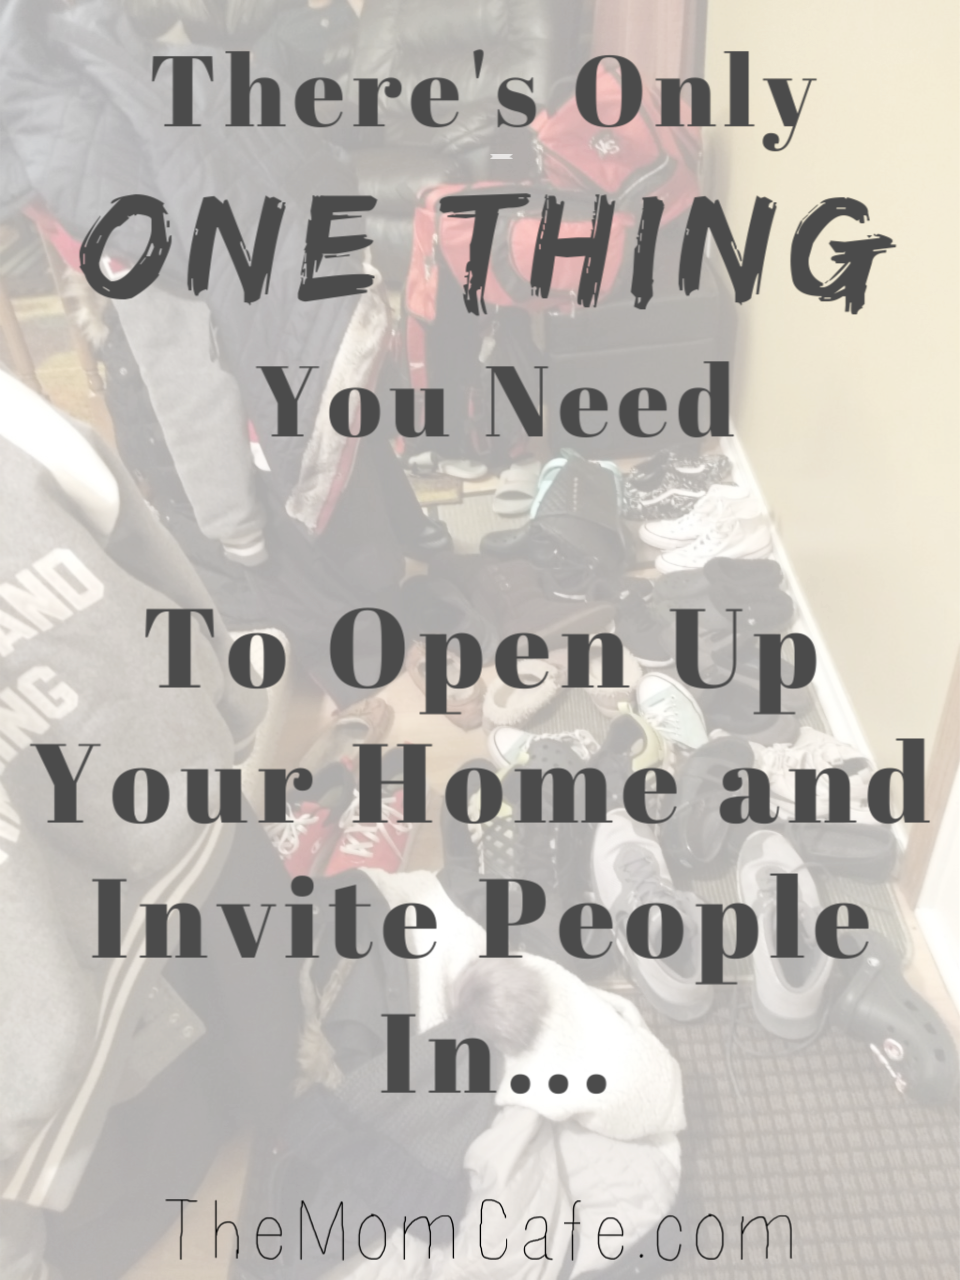 You only need one thing to open up your home and invite people in. #hostessing #home #encouragement #friends #hosting